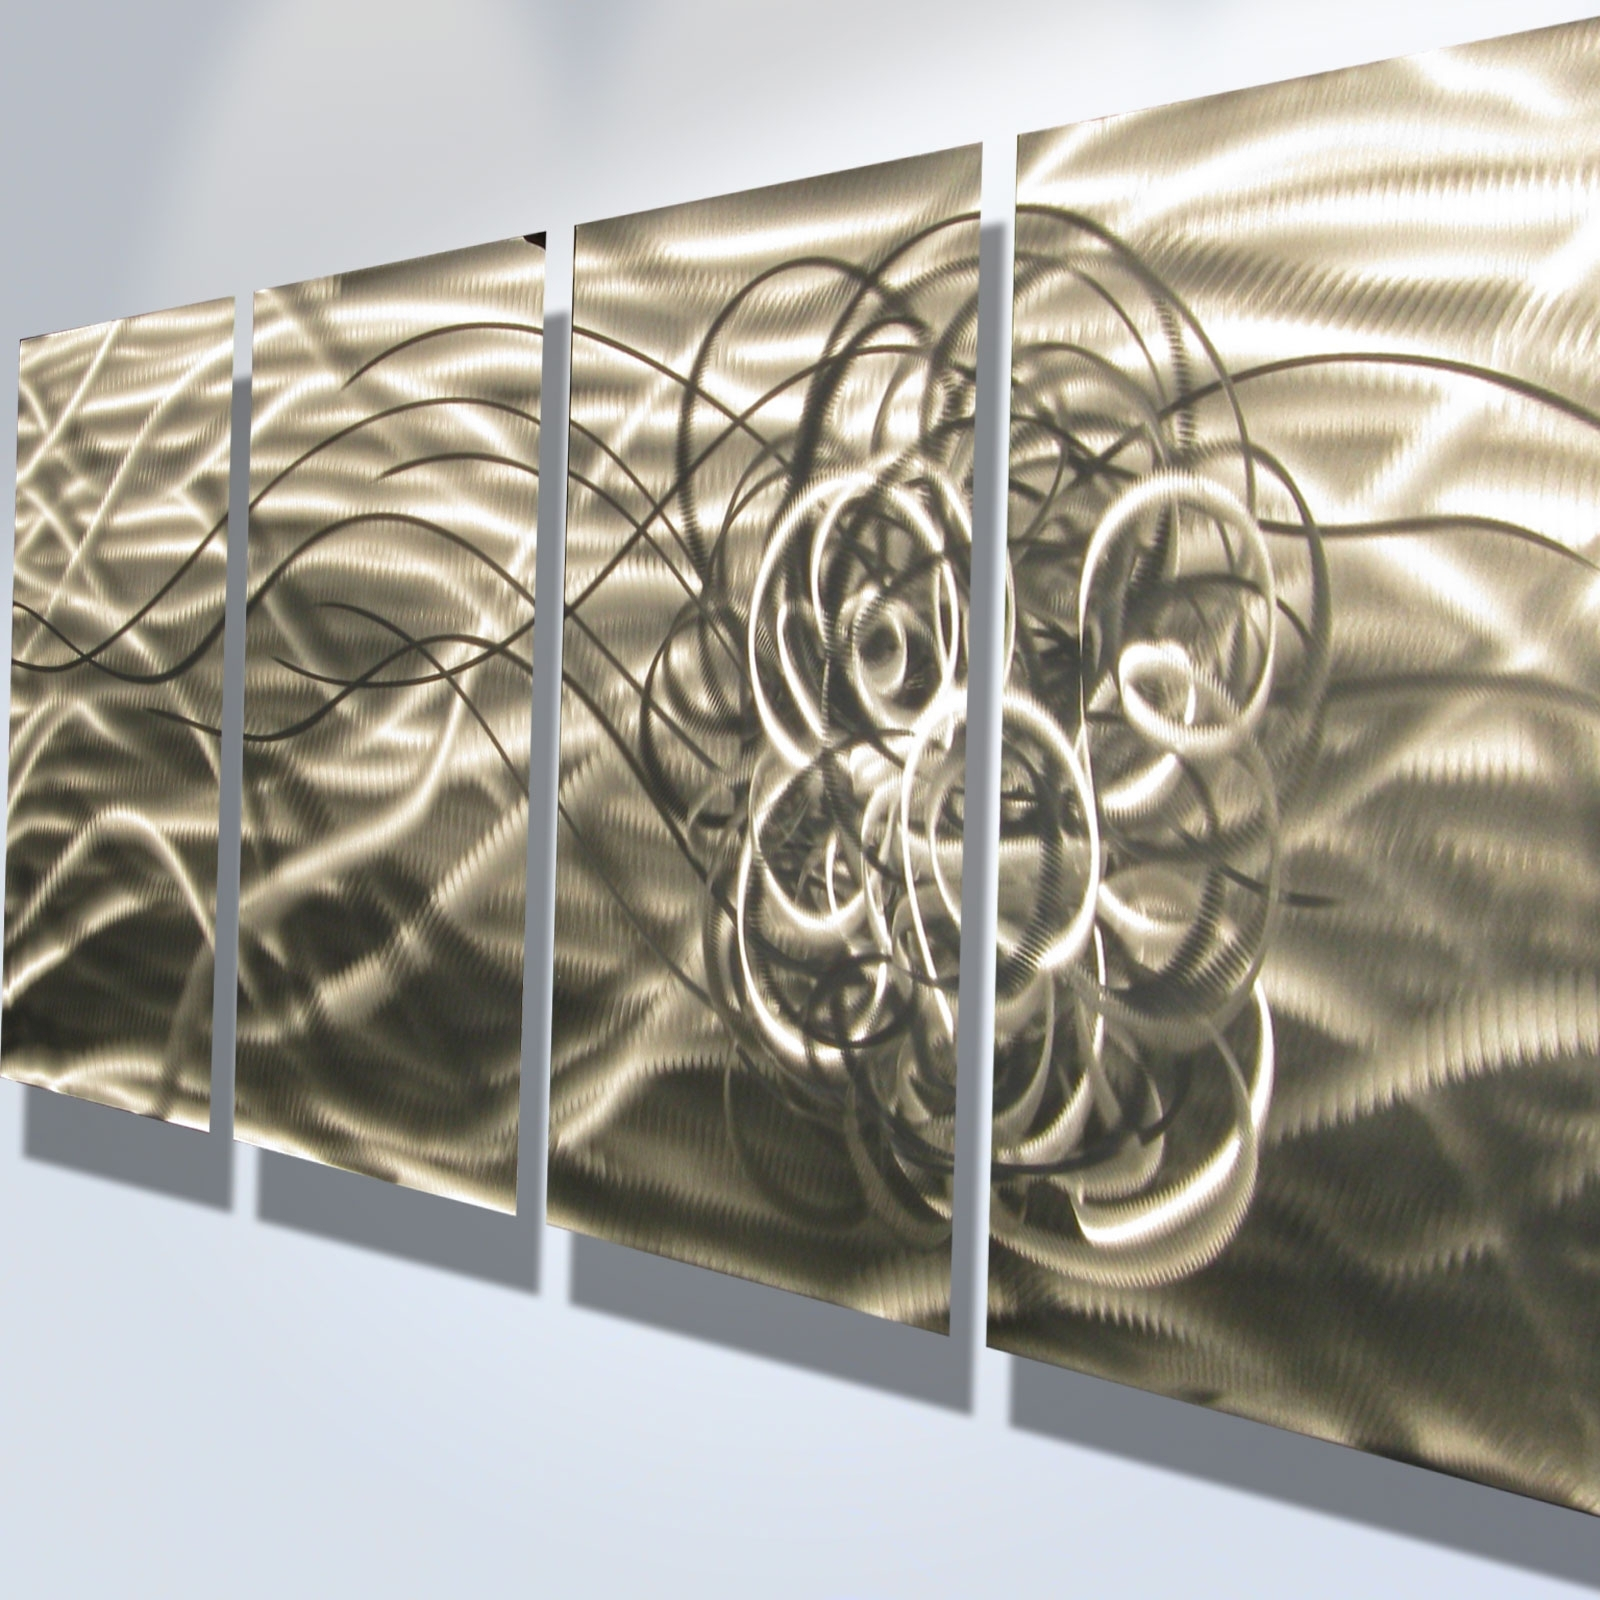 Classy 10+ Abstract Metal Wall Art Design Inspiration Of Best 25+ With Regard To Preferred Kindred Abstract Metal Wall Art (View 4 of 15)